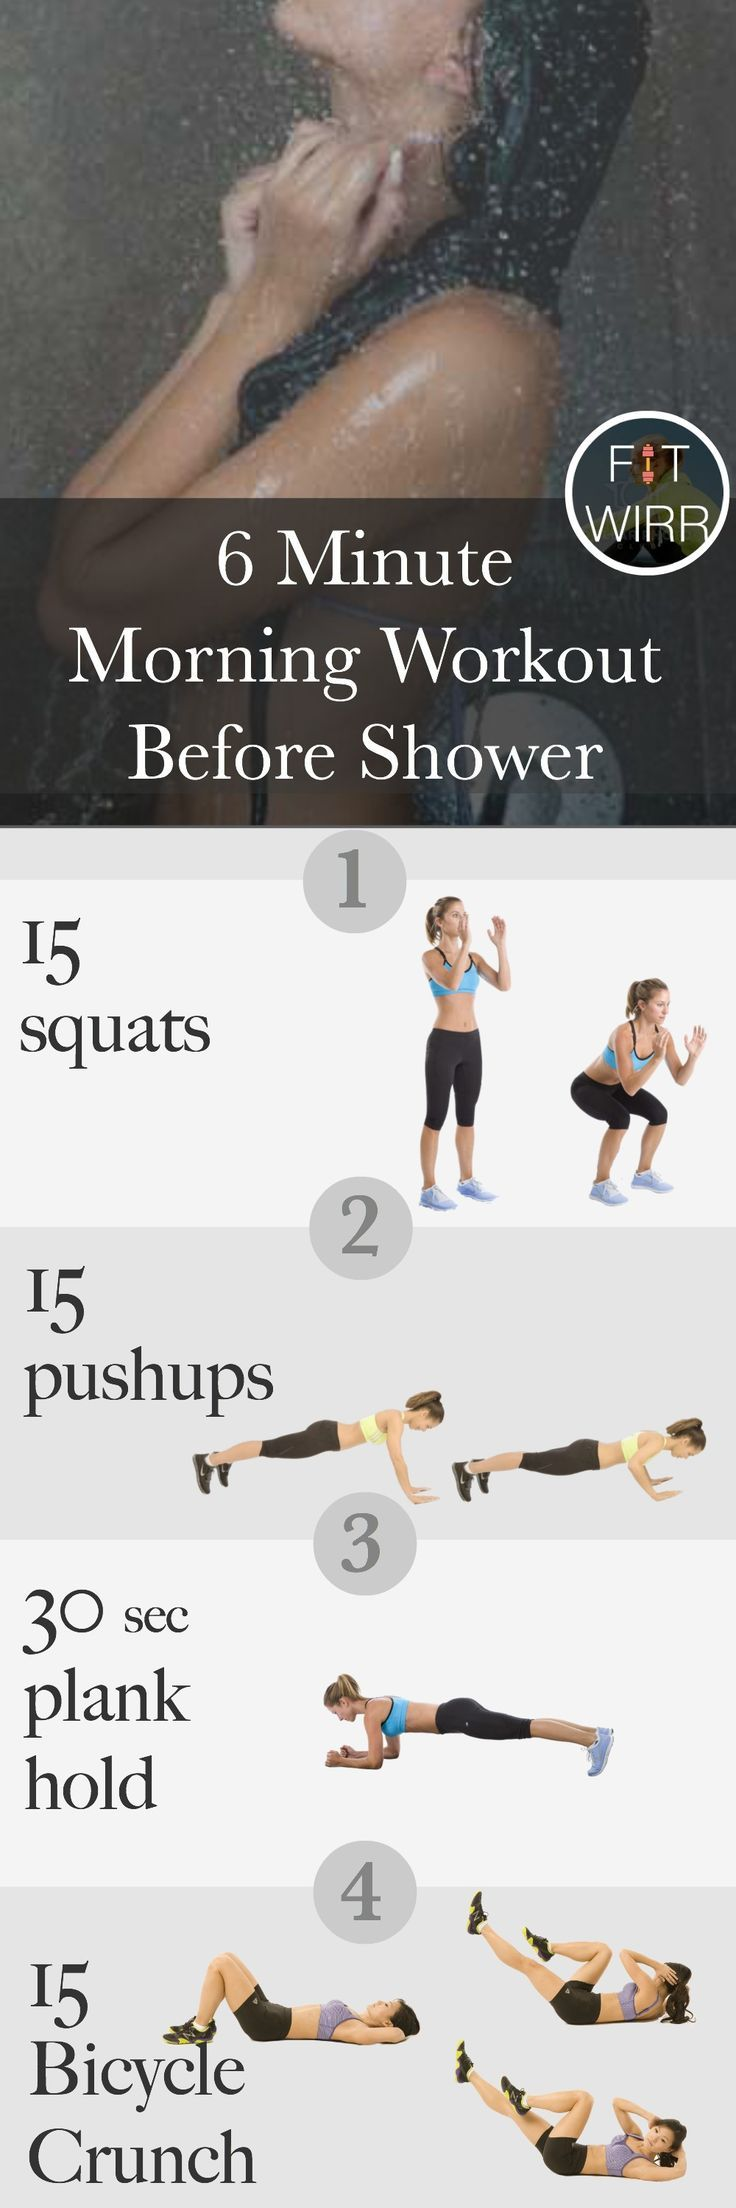 6 minute workout when your looking to squeeze in a workout on a busy day. Looks easy enough to use on a clinical or work day.